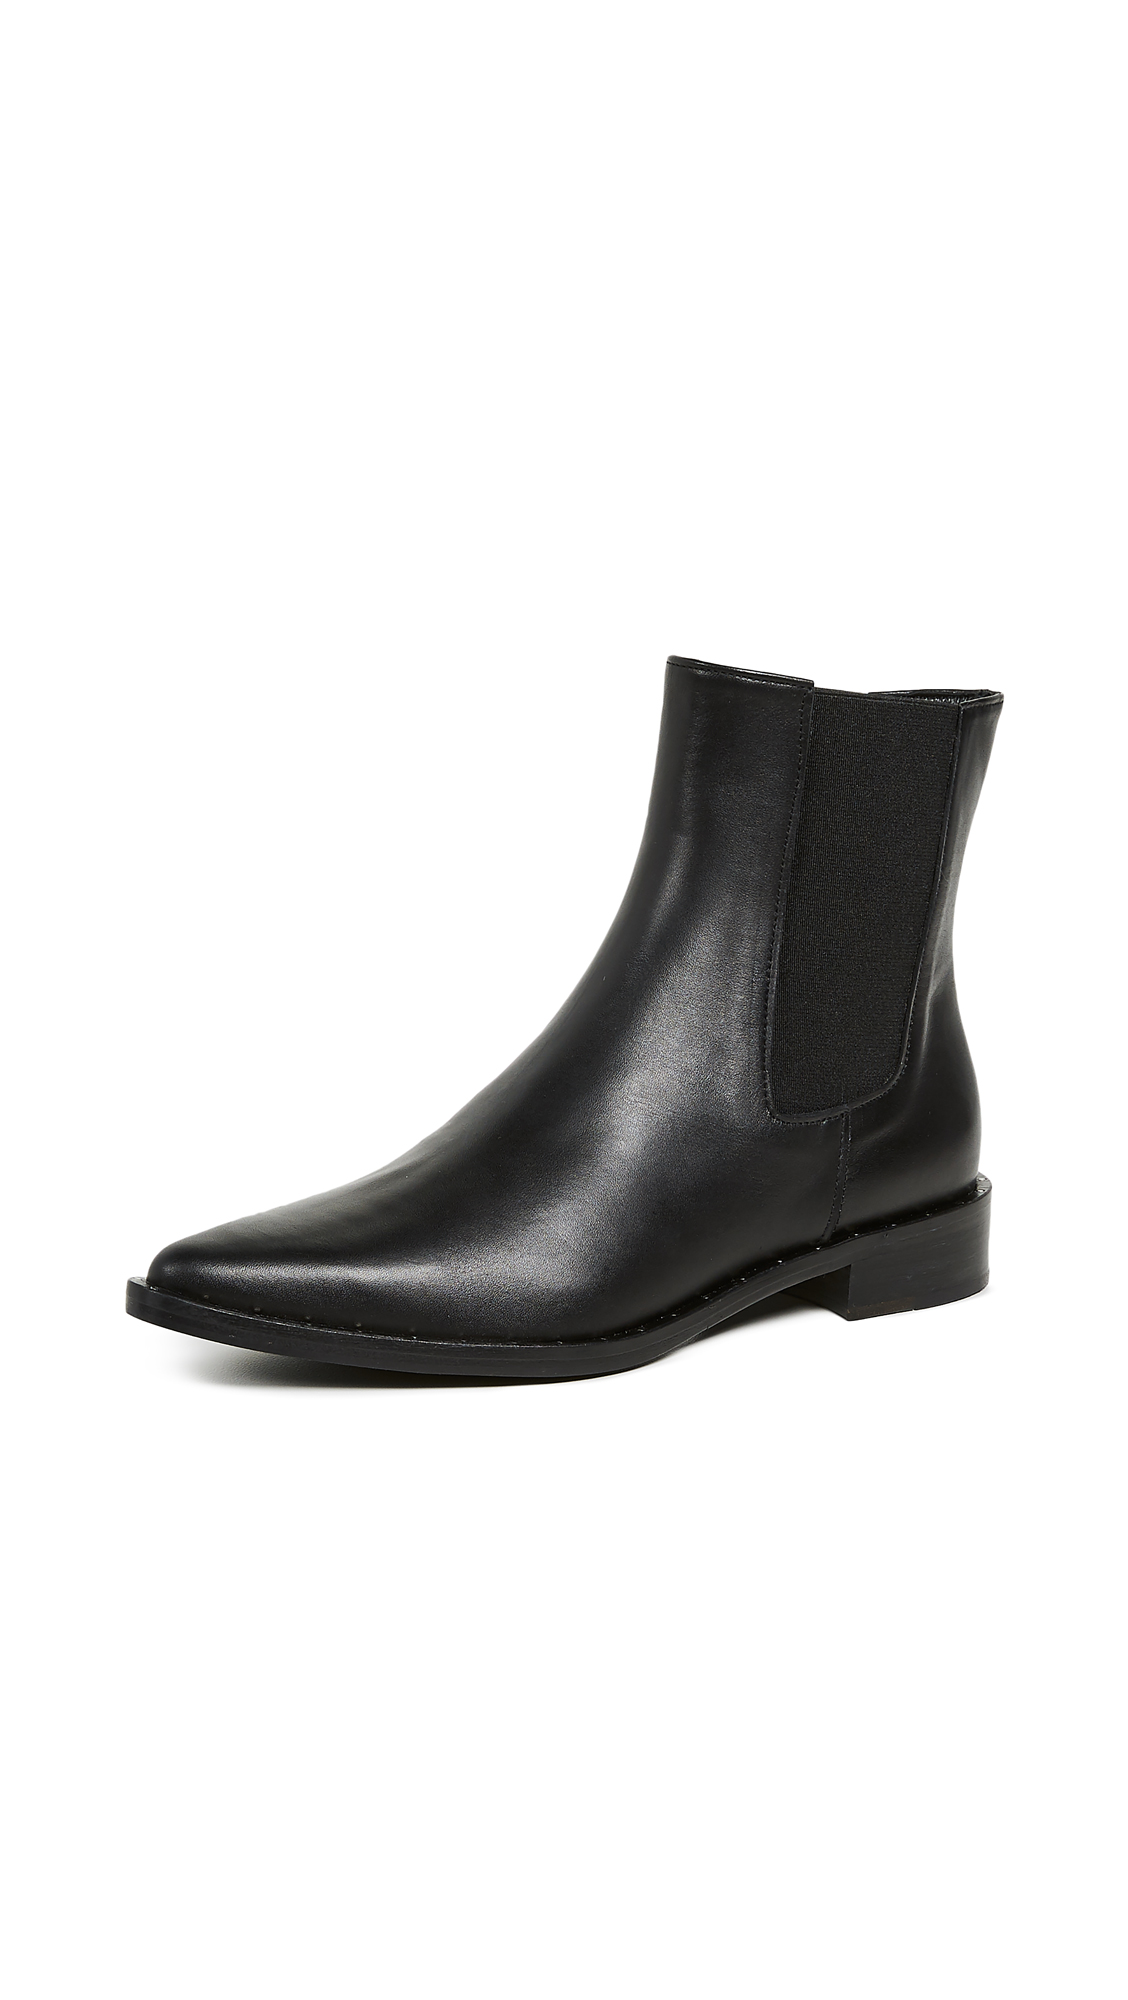 Freda Salvador Joan Pointed Toe Chelsea Boots - Black